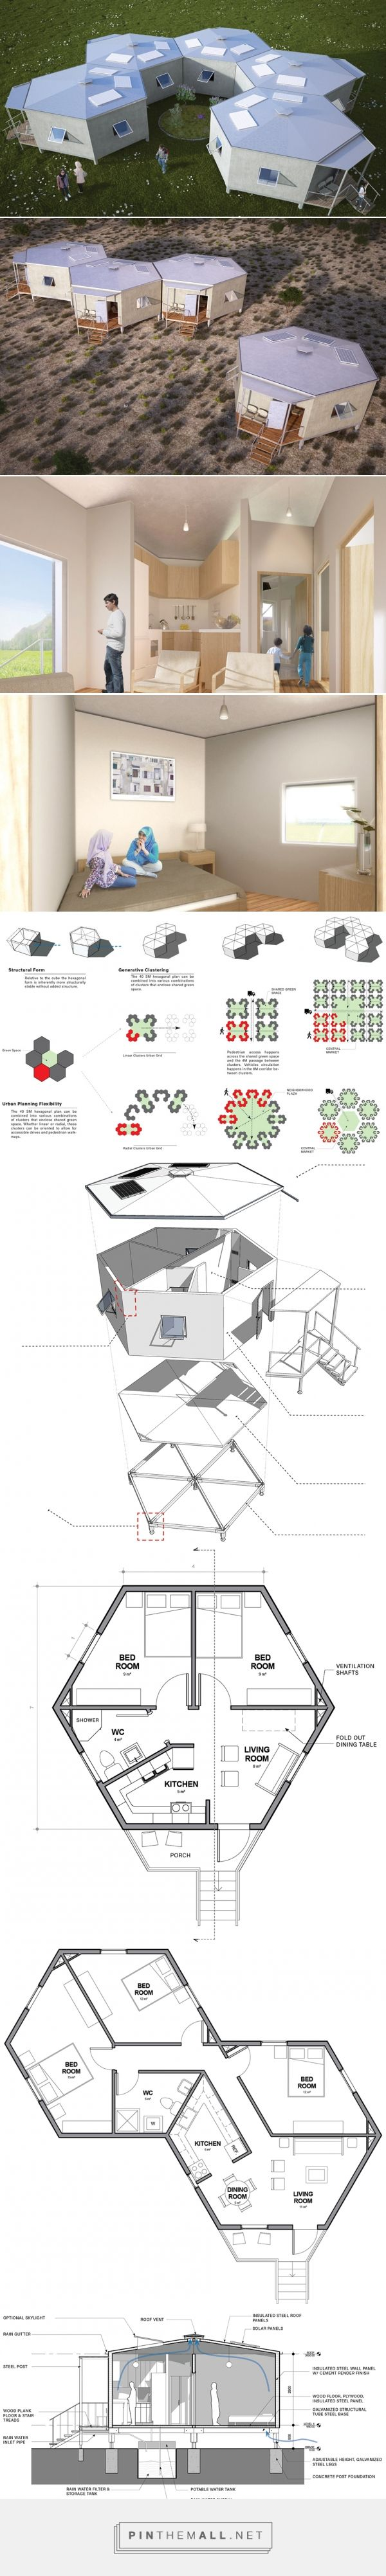 Architects for Society creates low-cost hexagon refugee houses